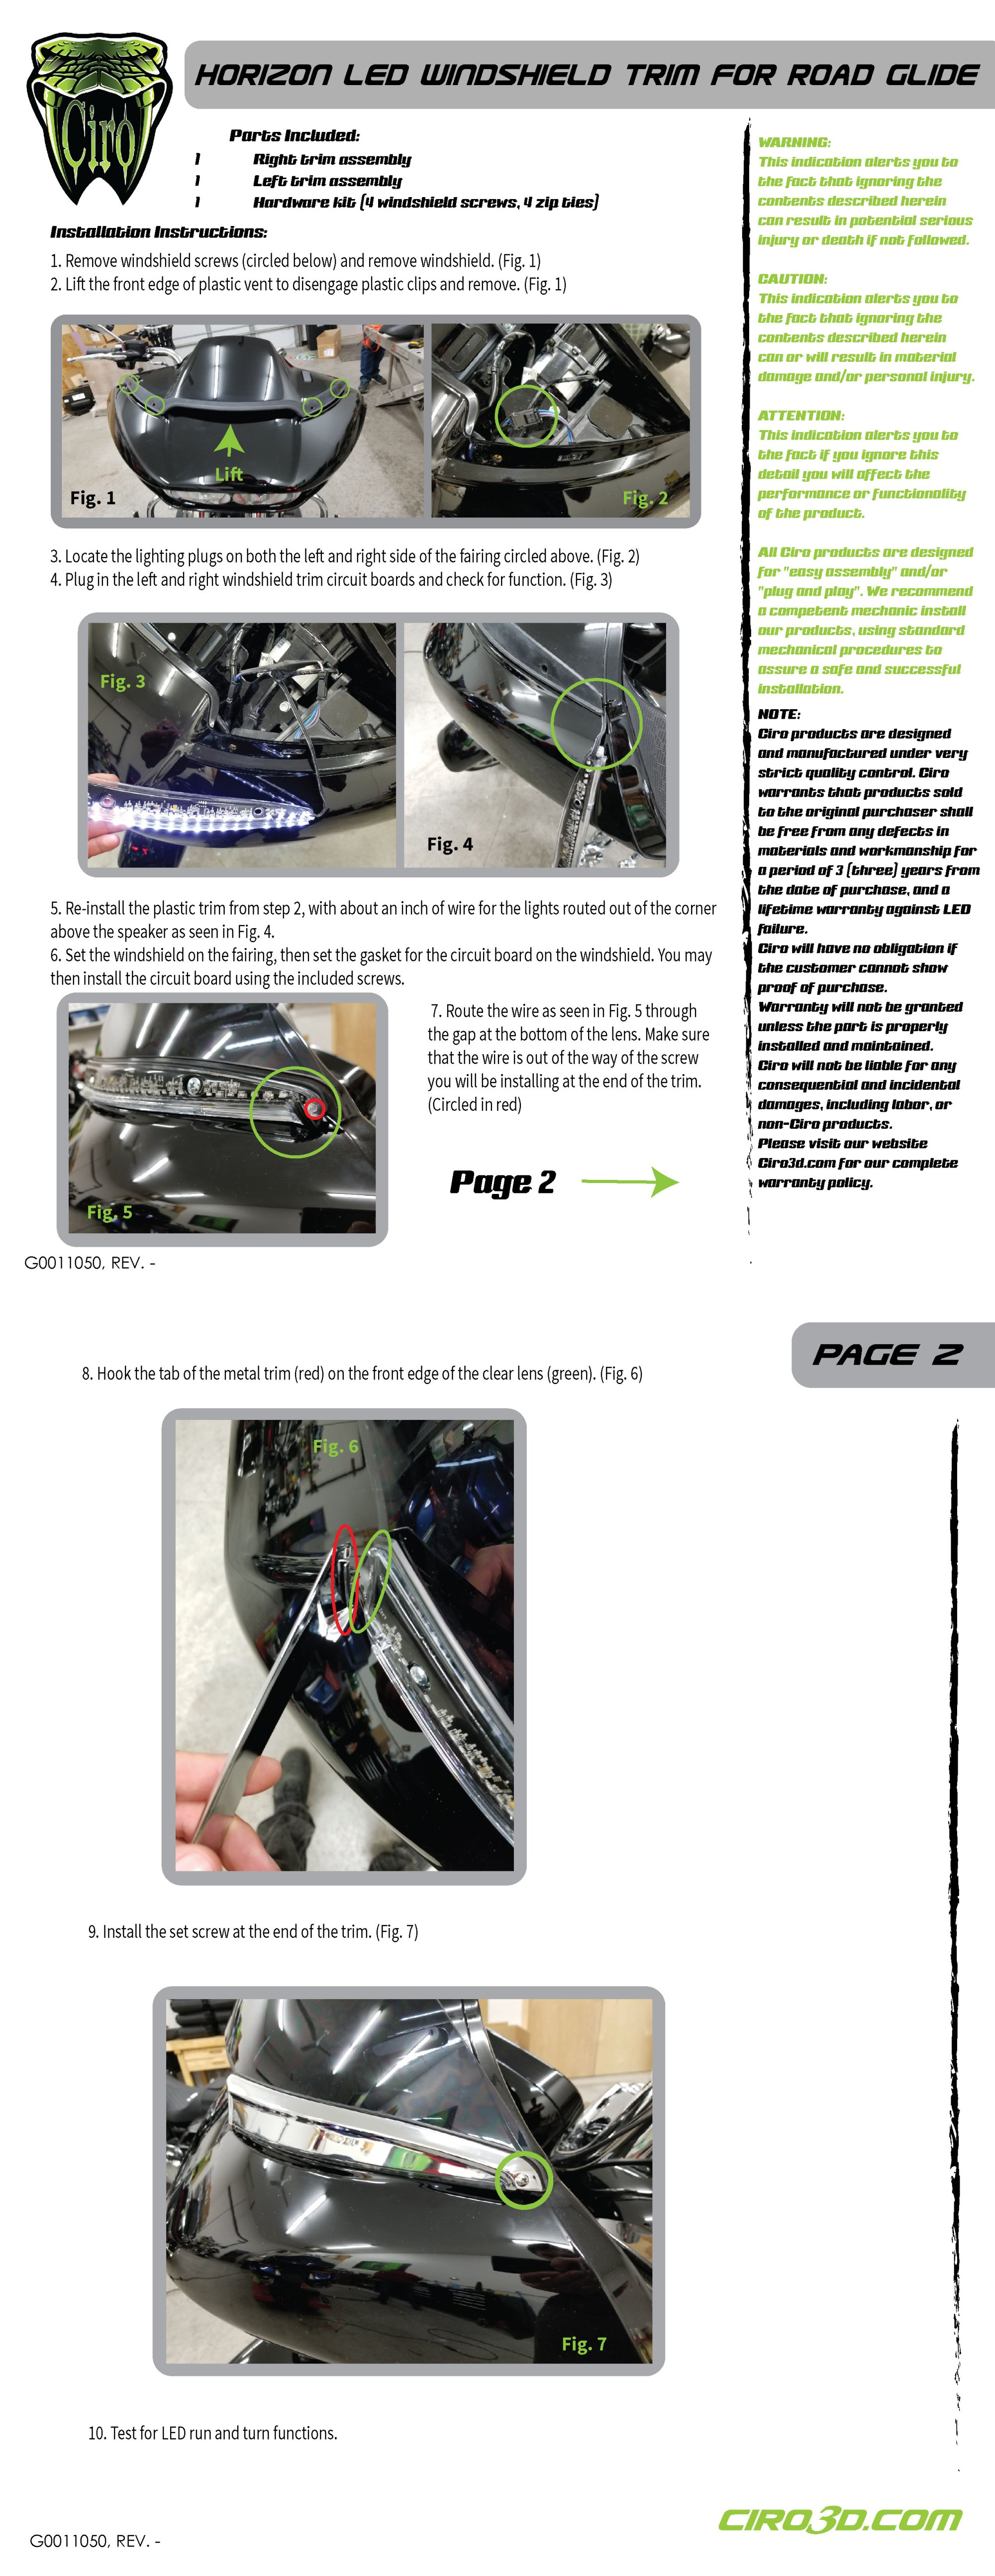 hight resolution of related products lighted vent trim for road glide